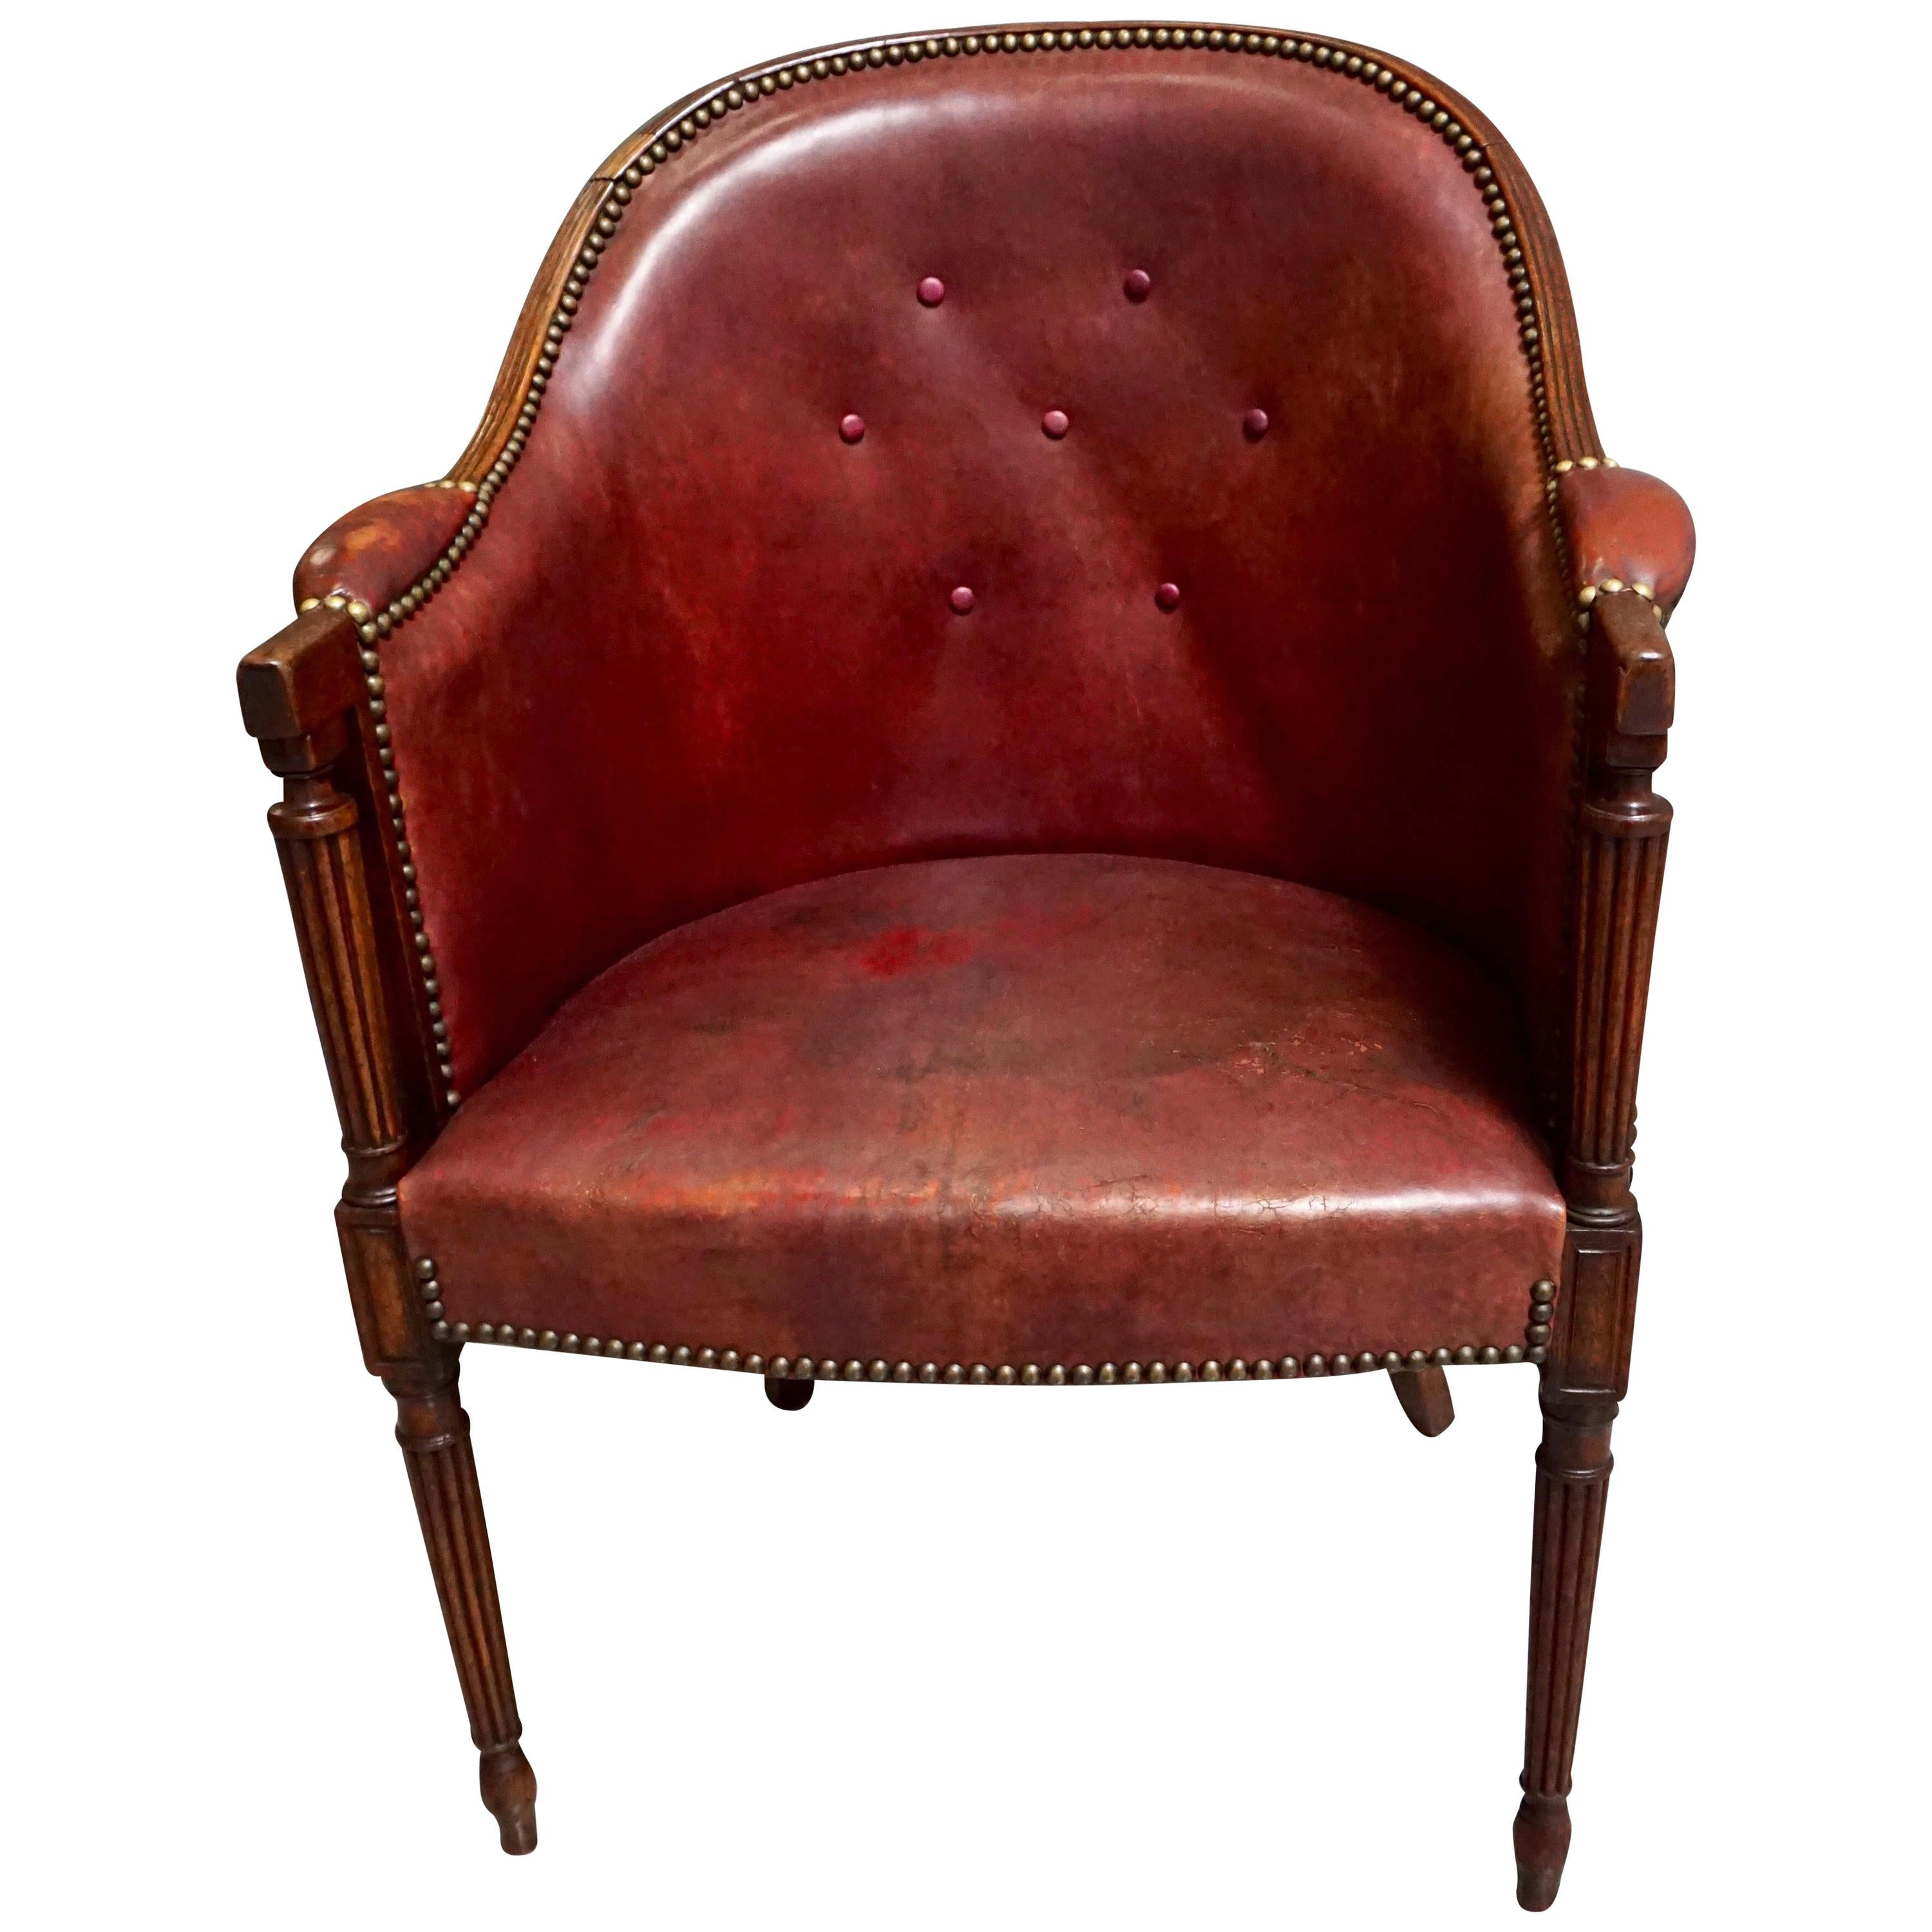 Pleasing Leather Tub Chairs 67 For Sale On 1Stdibs Ibusinesslaw Wood Chair Design Ideas Ibusinesslaworg